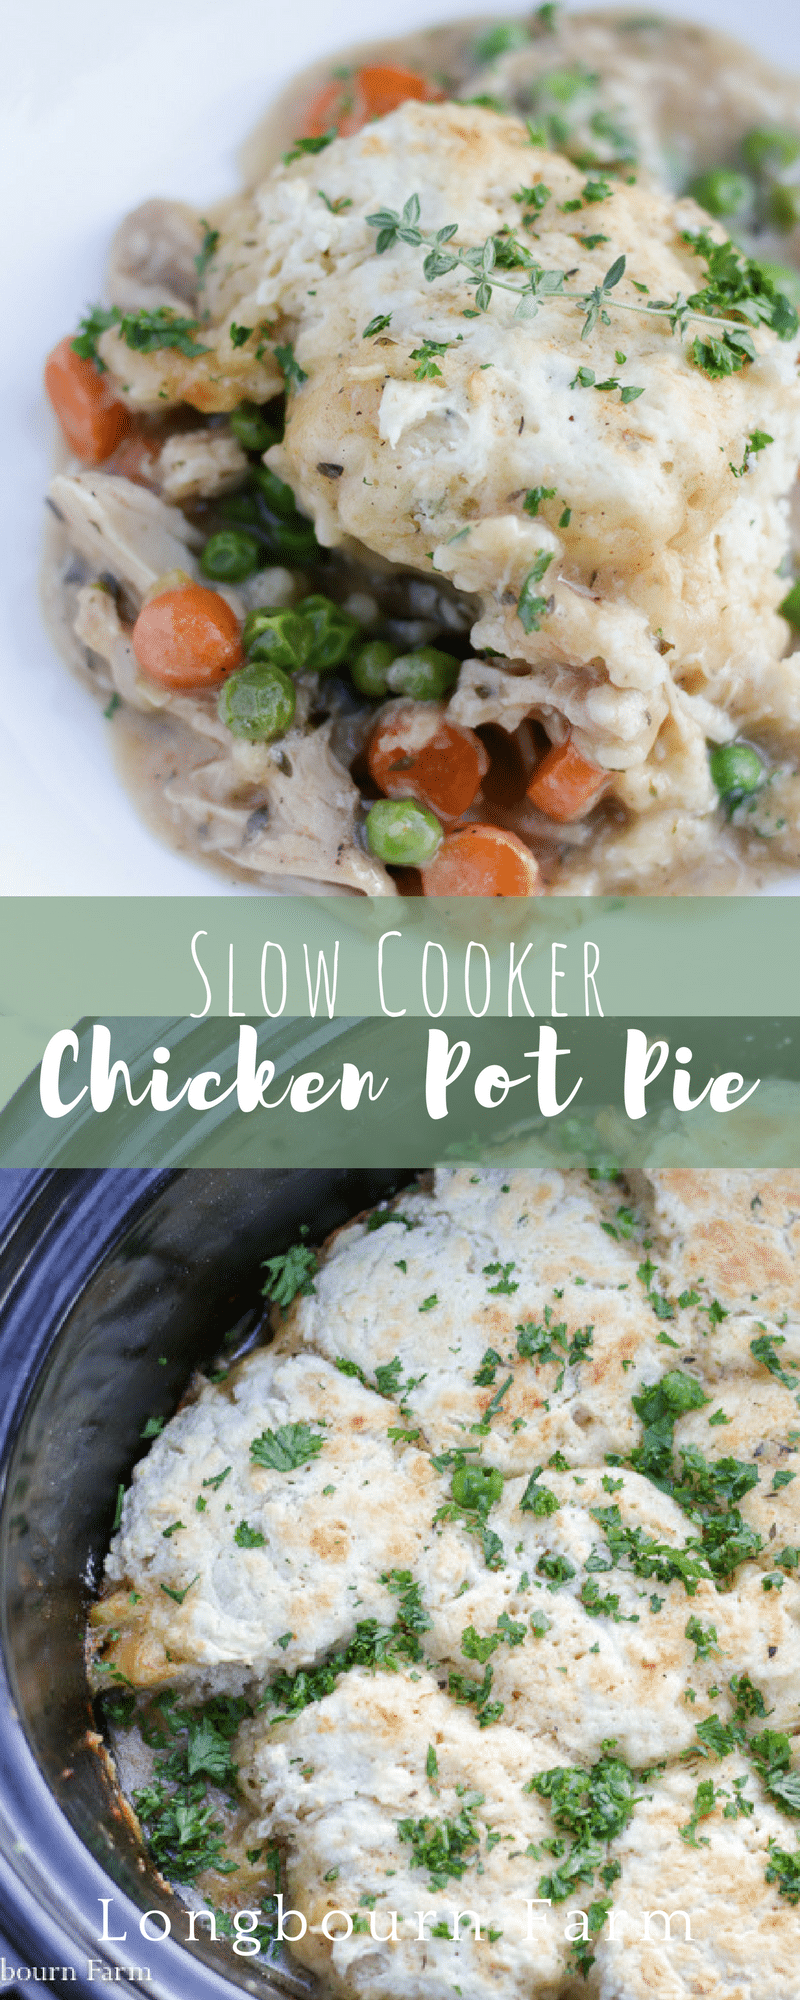 Slow cooker chicken pot pie is the perfect meal for a busy day! Comfort food made easy, it's packed with flavor and sure to be an instant family favorite. via @longbournfarm